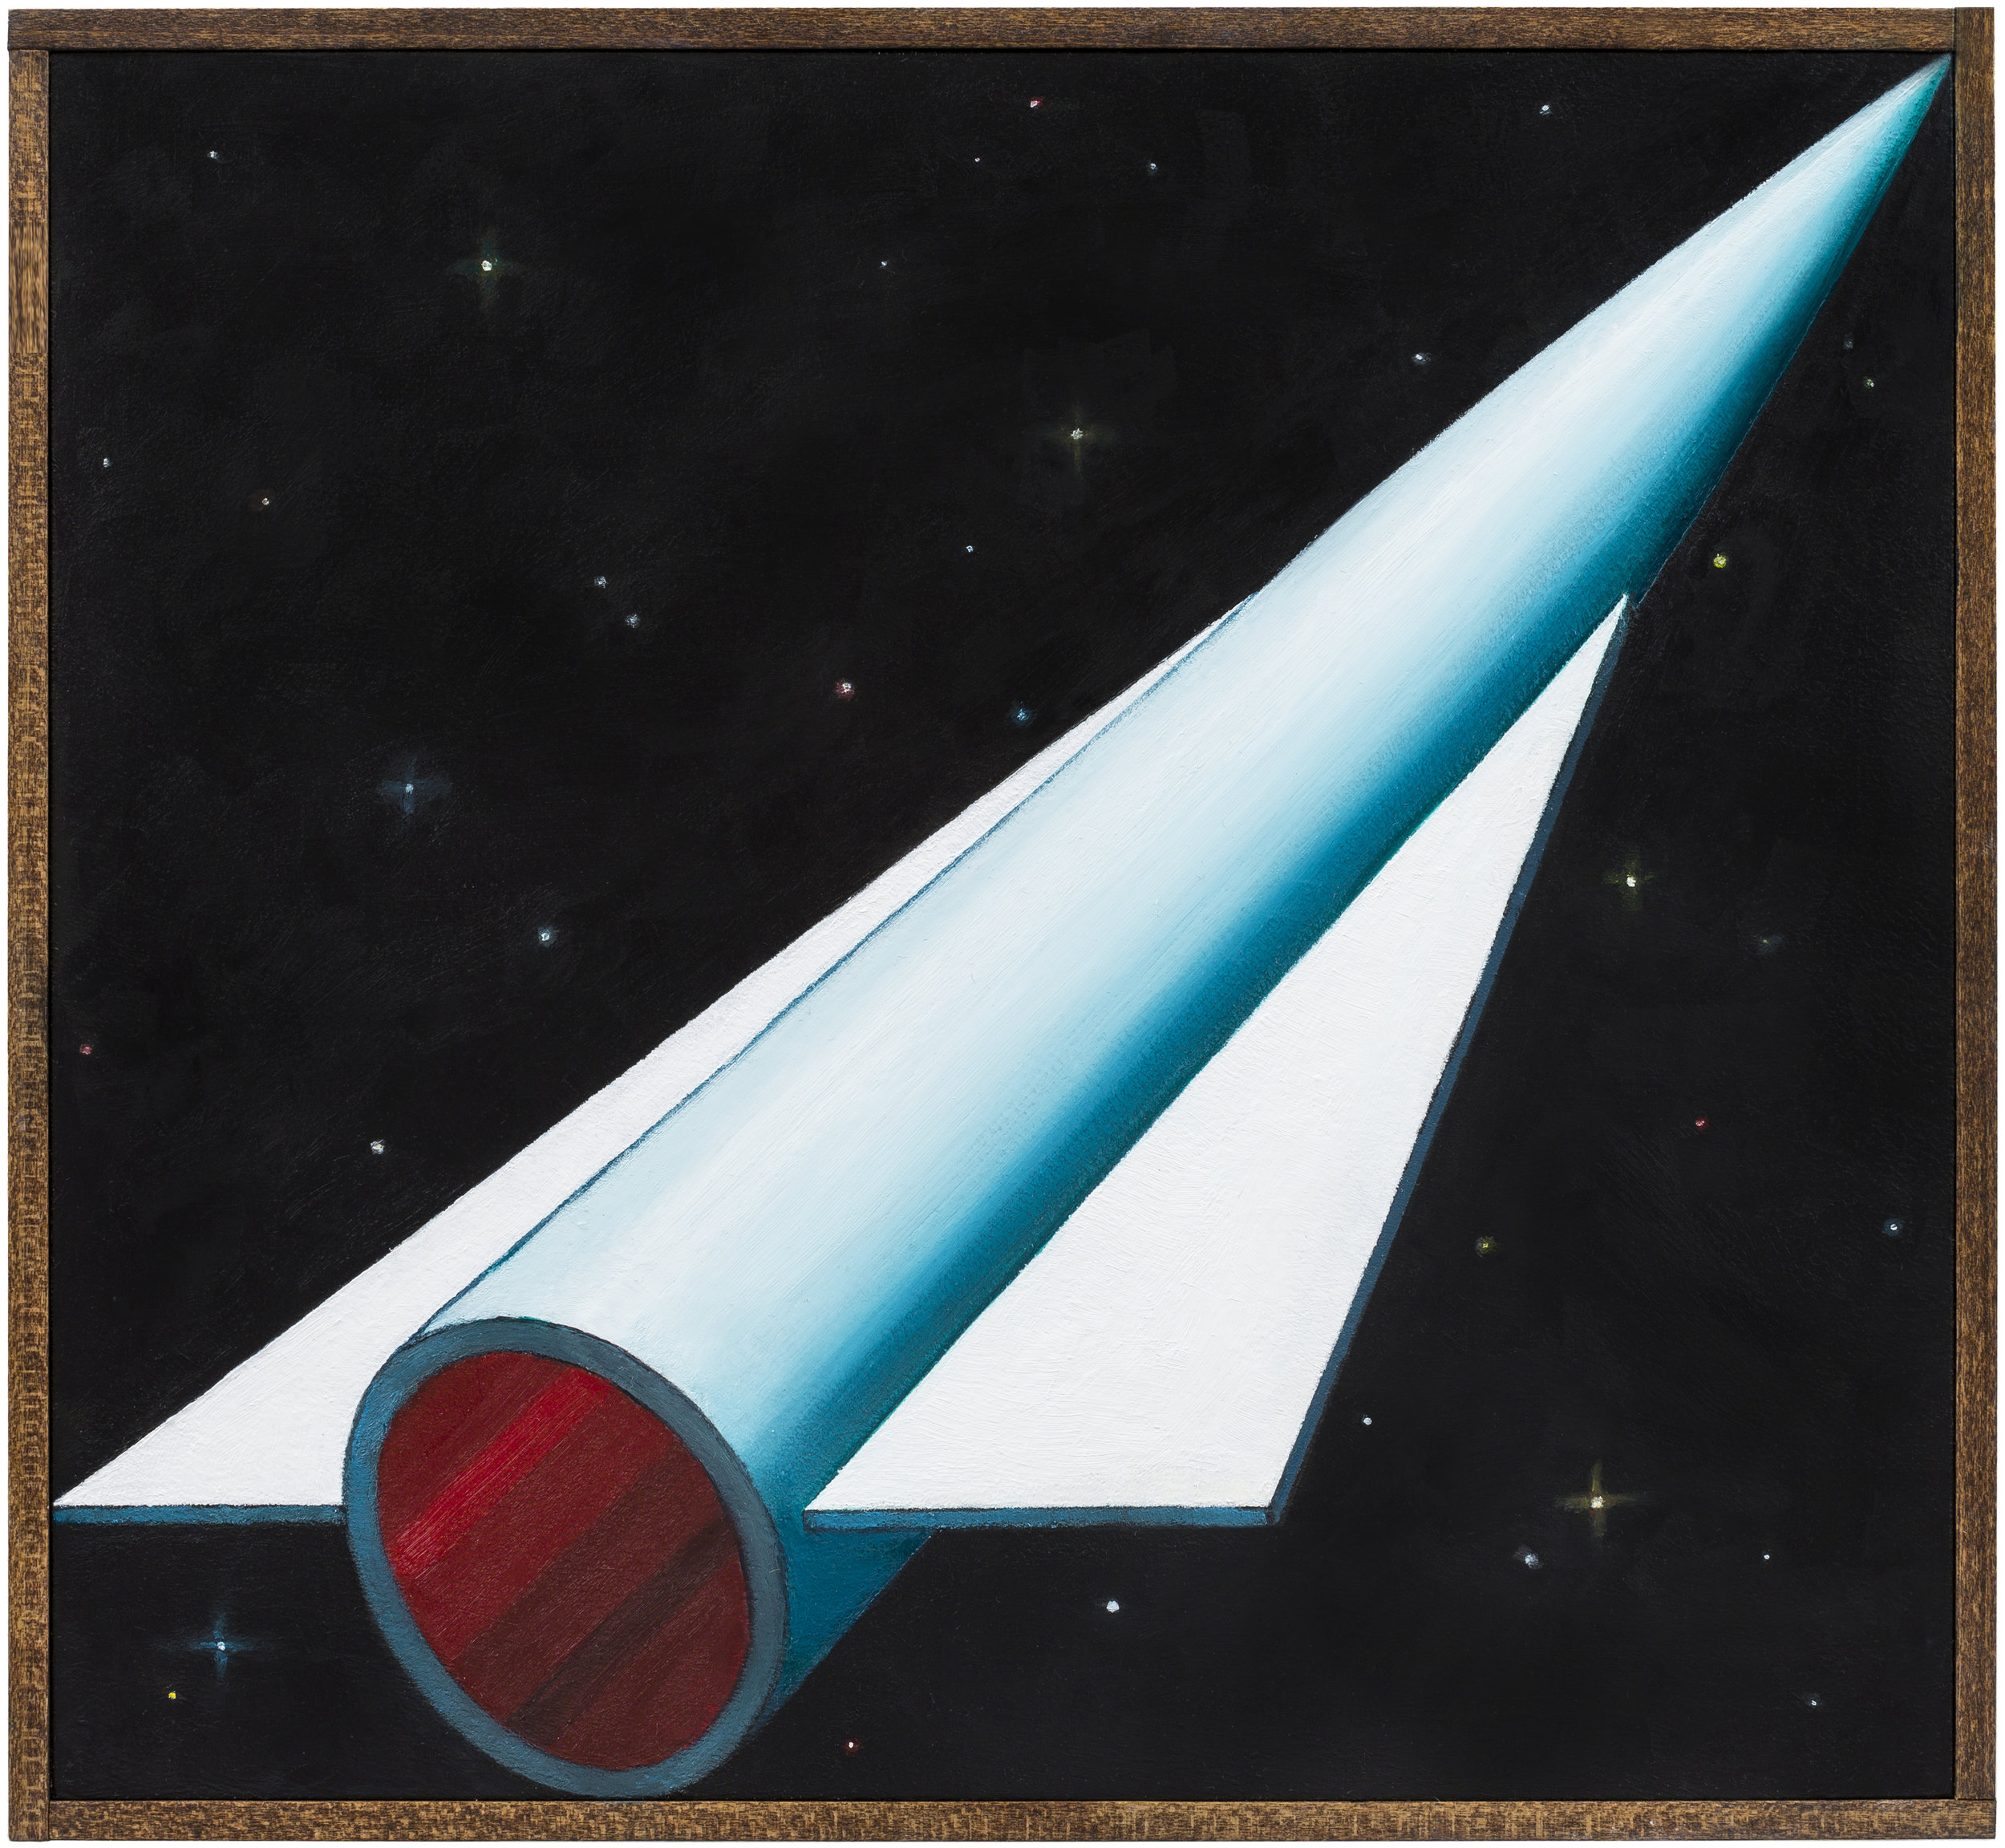 Deep Orbit , 2018 Oil on board, wood frame 11.5 x 12.5 inches